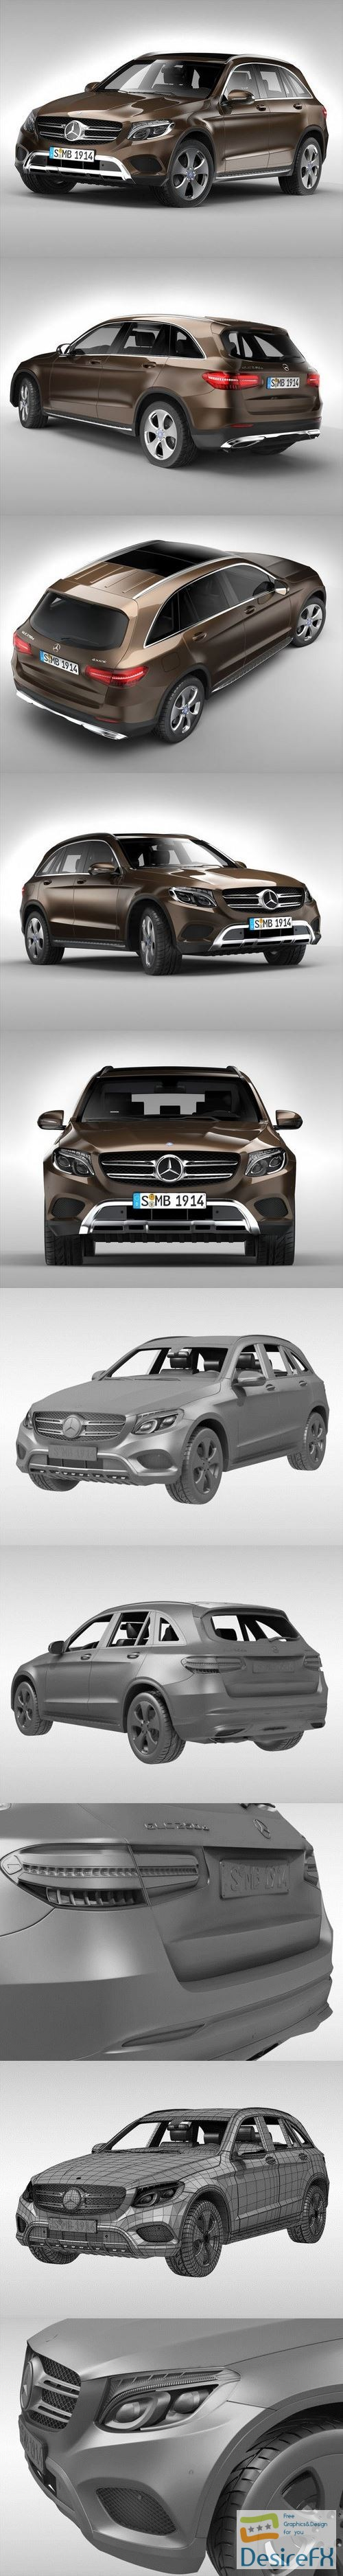 3d-models - Mercedes Benz GLC 250 4MATIC 2016 3D Model